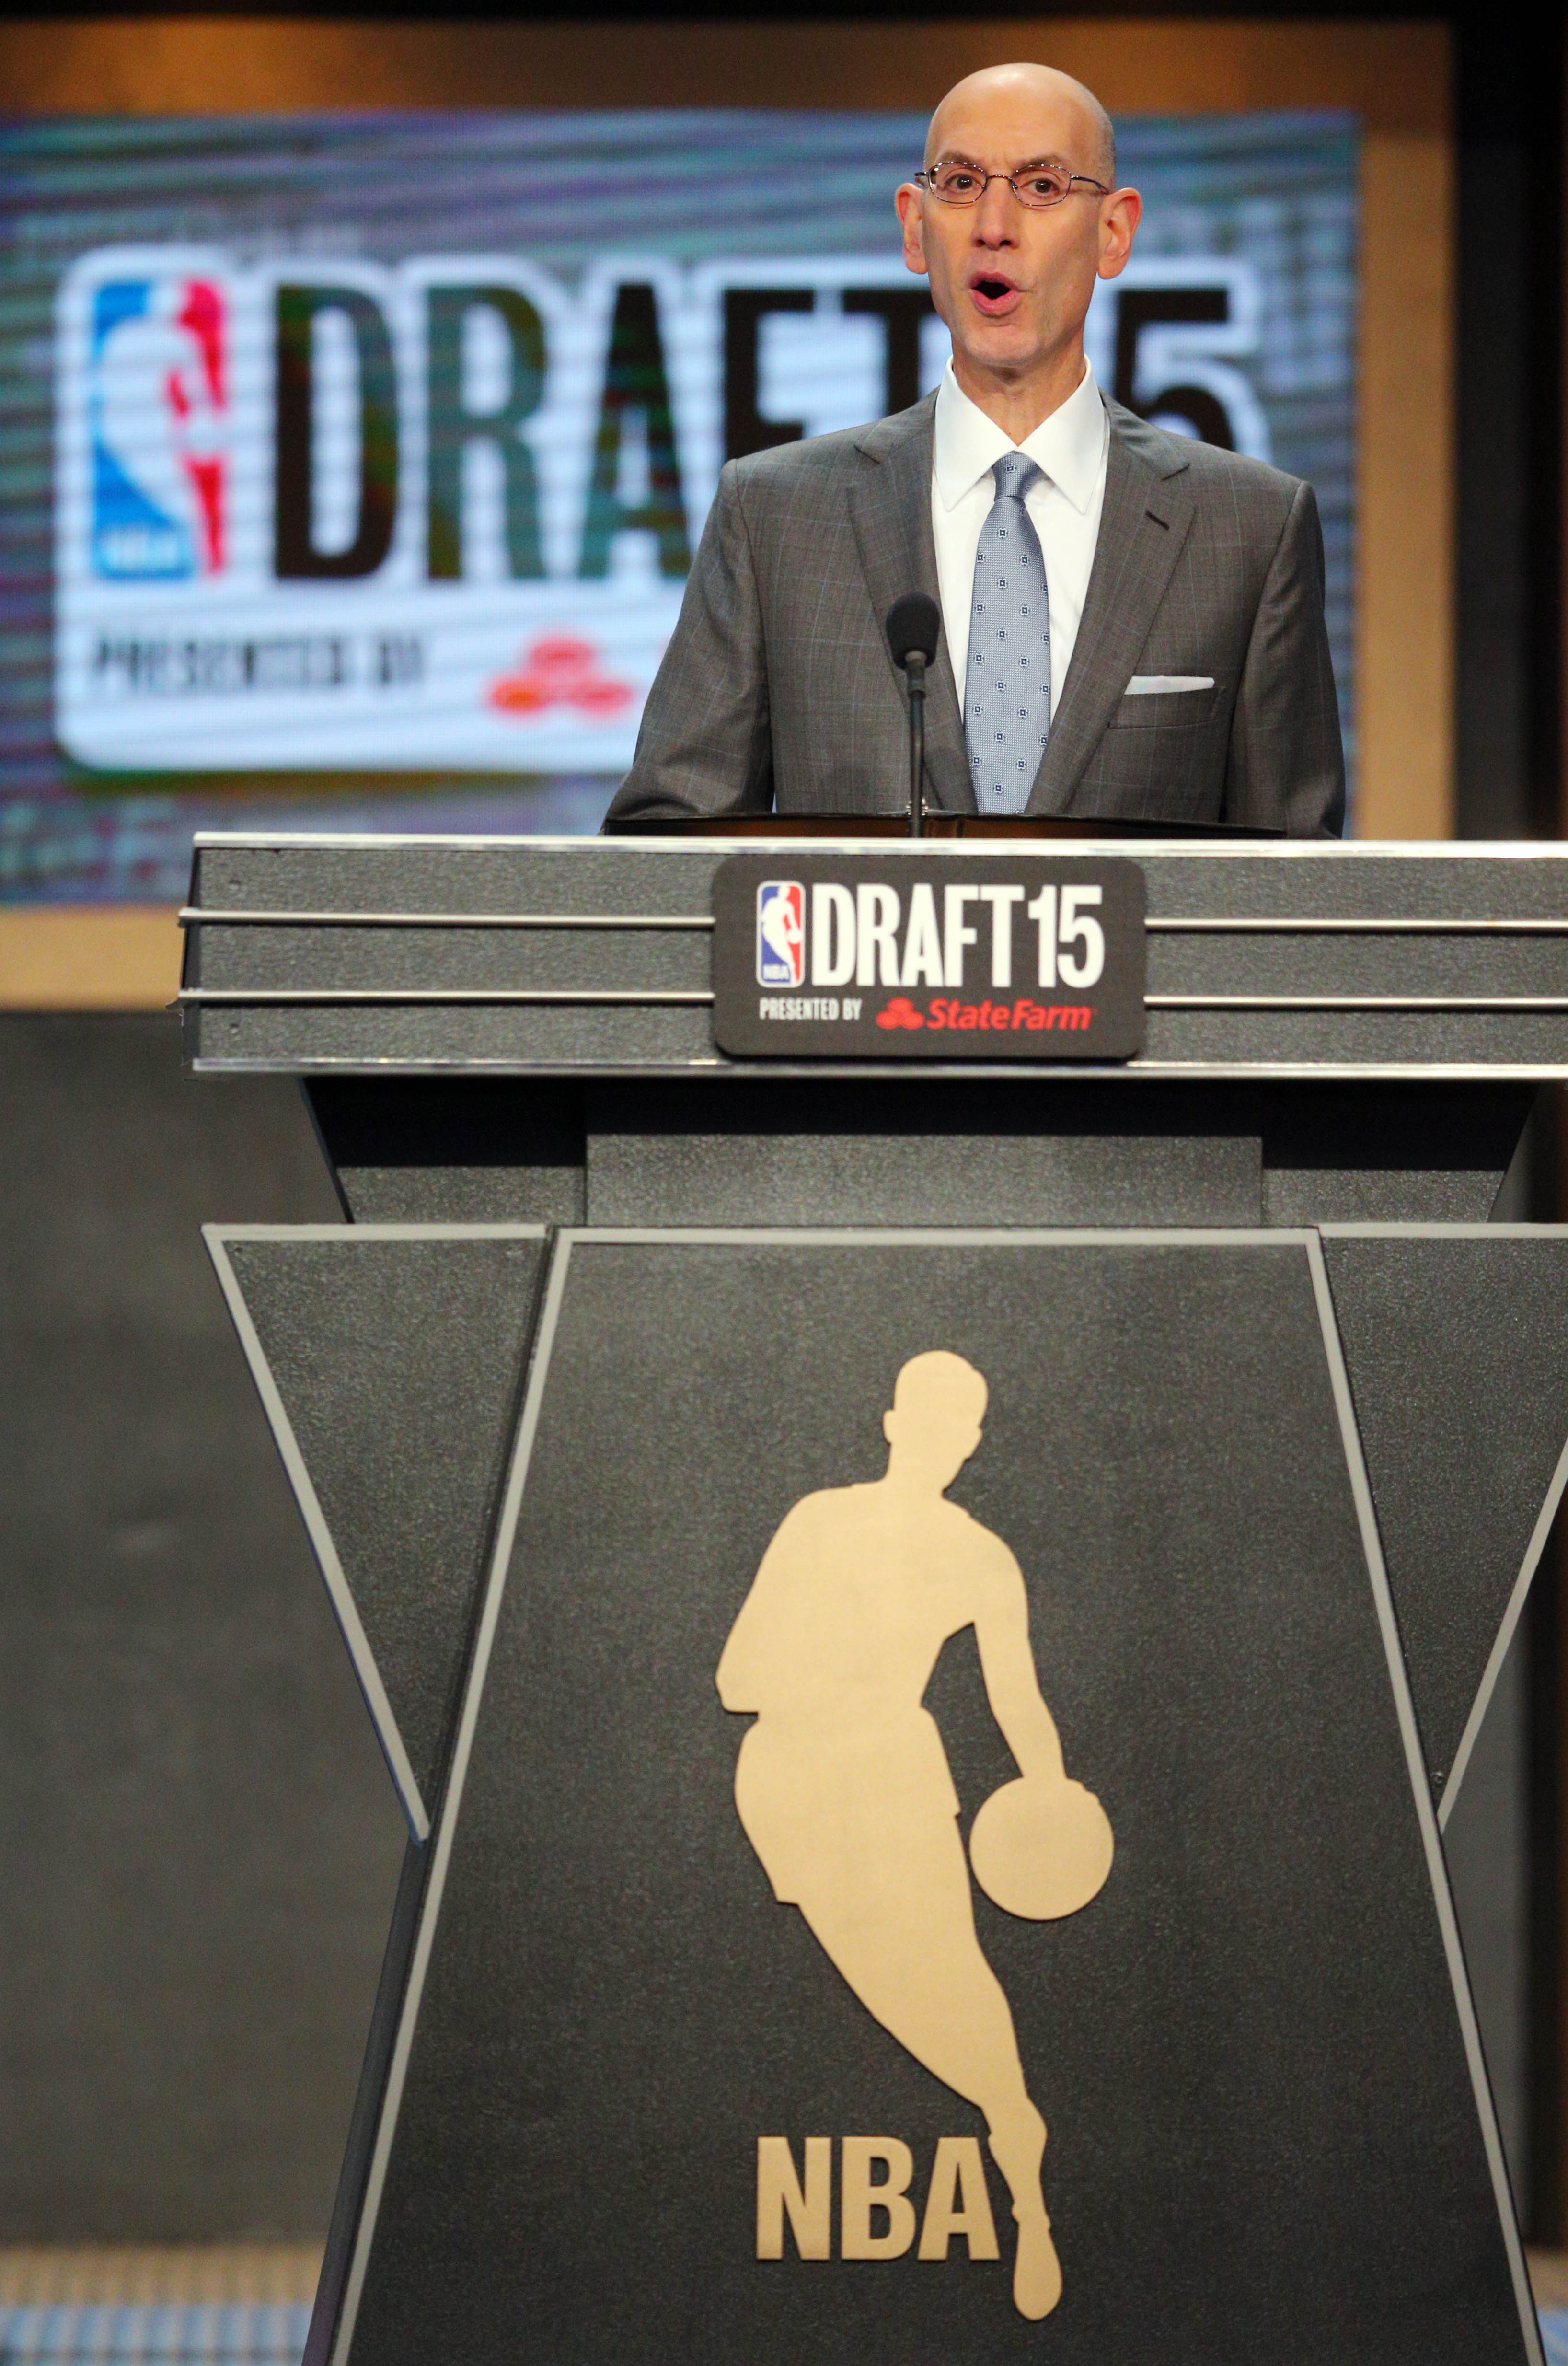 Raising the NBA Draft age limit to 20 would cost new players millions